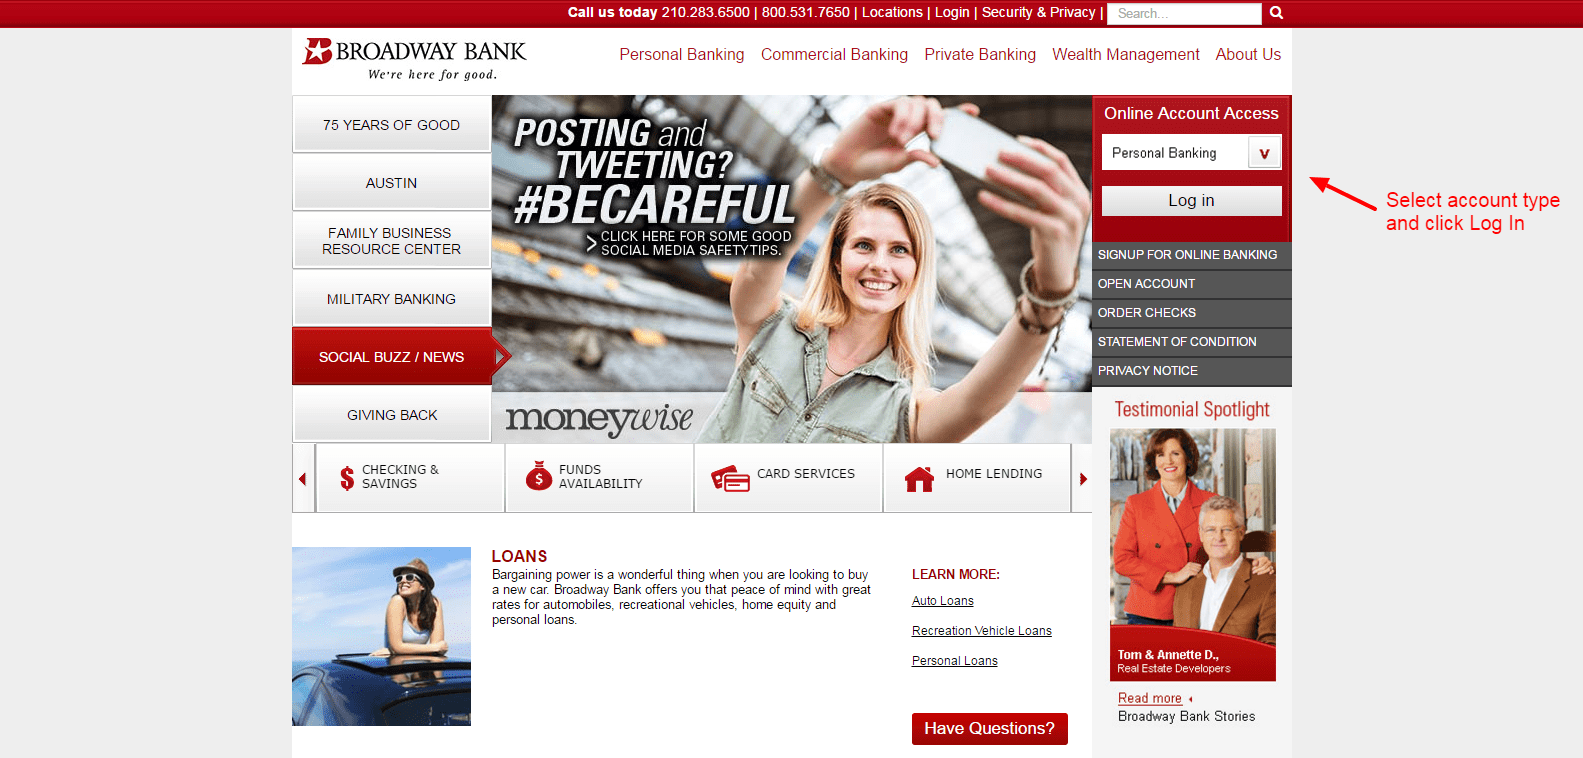 login Broadway Bank